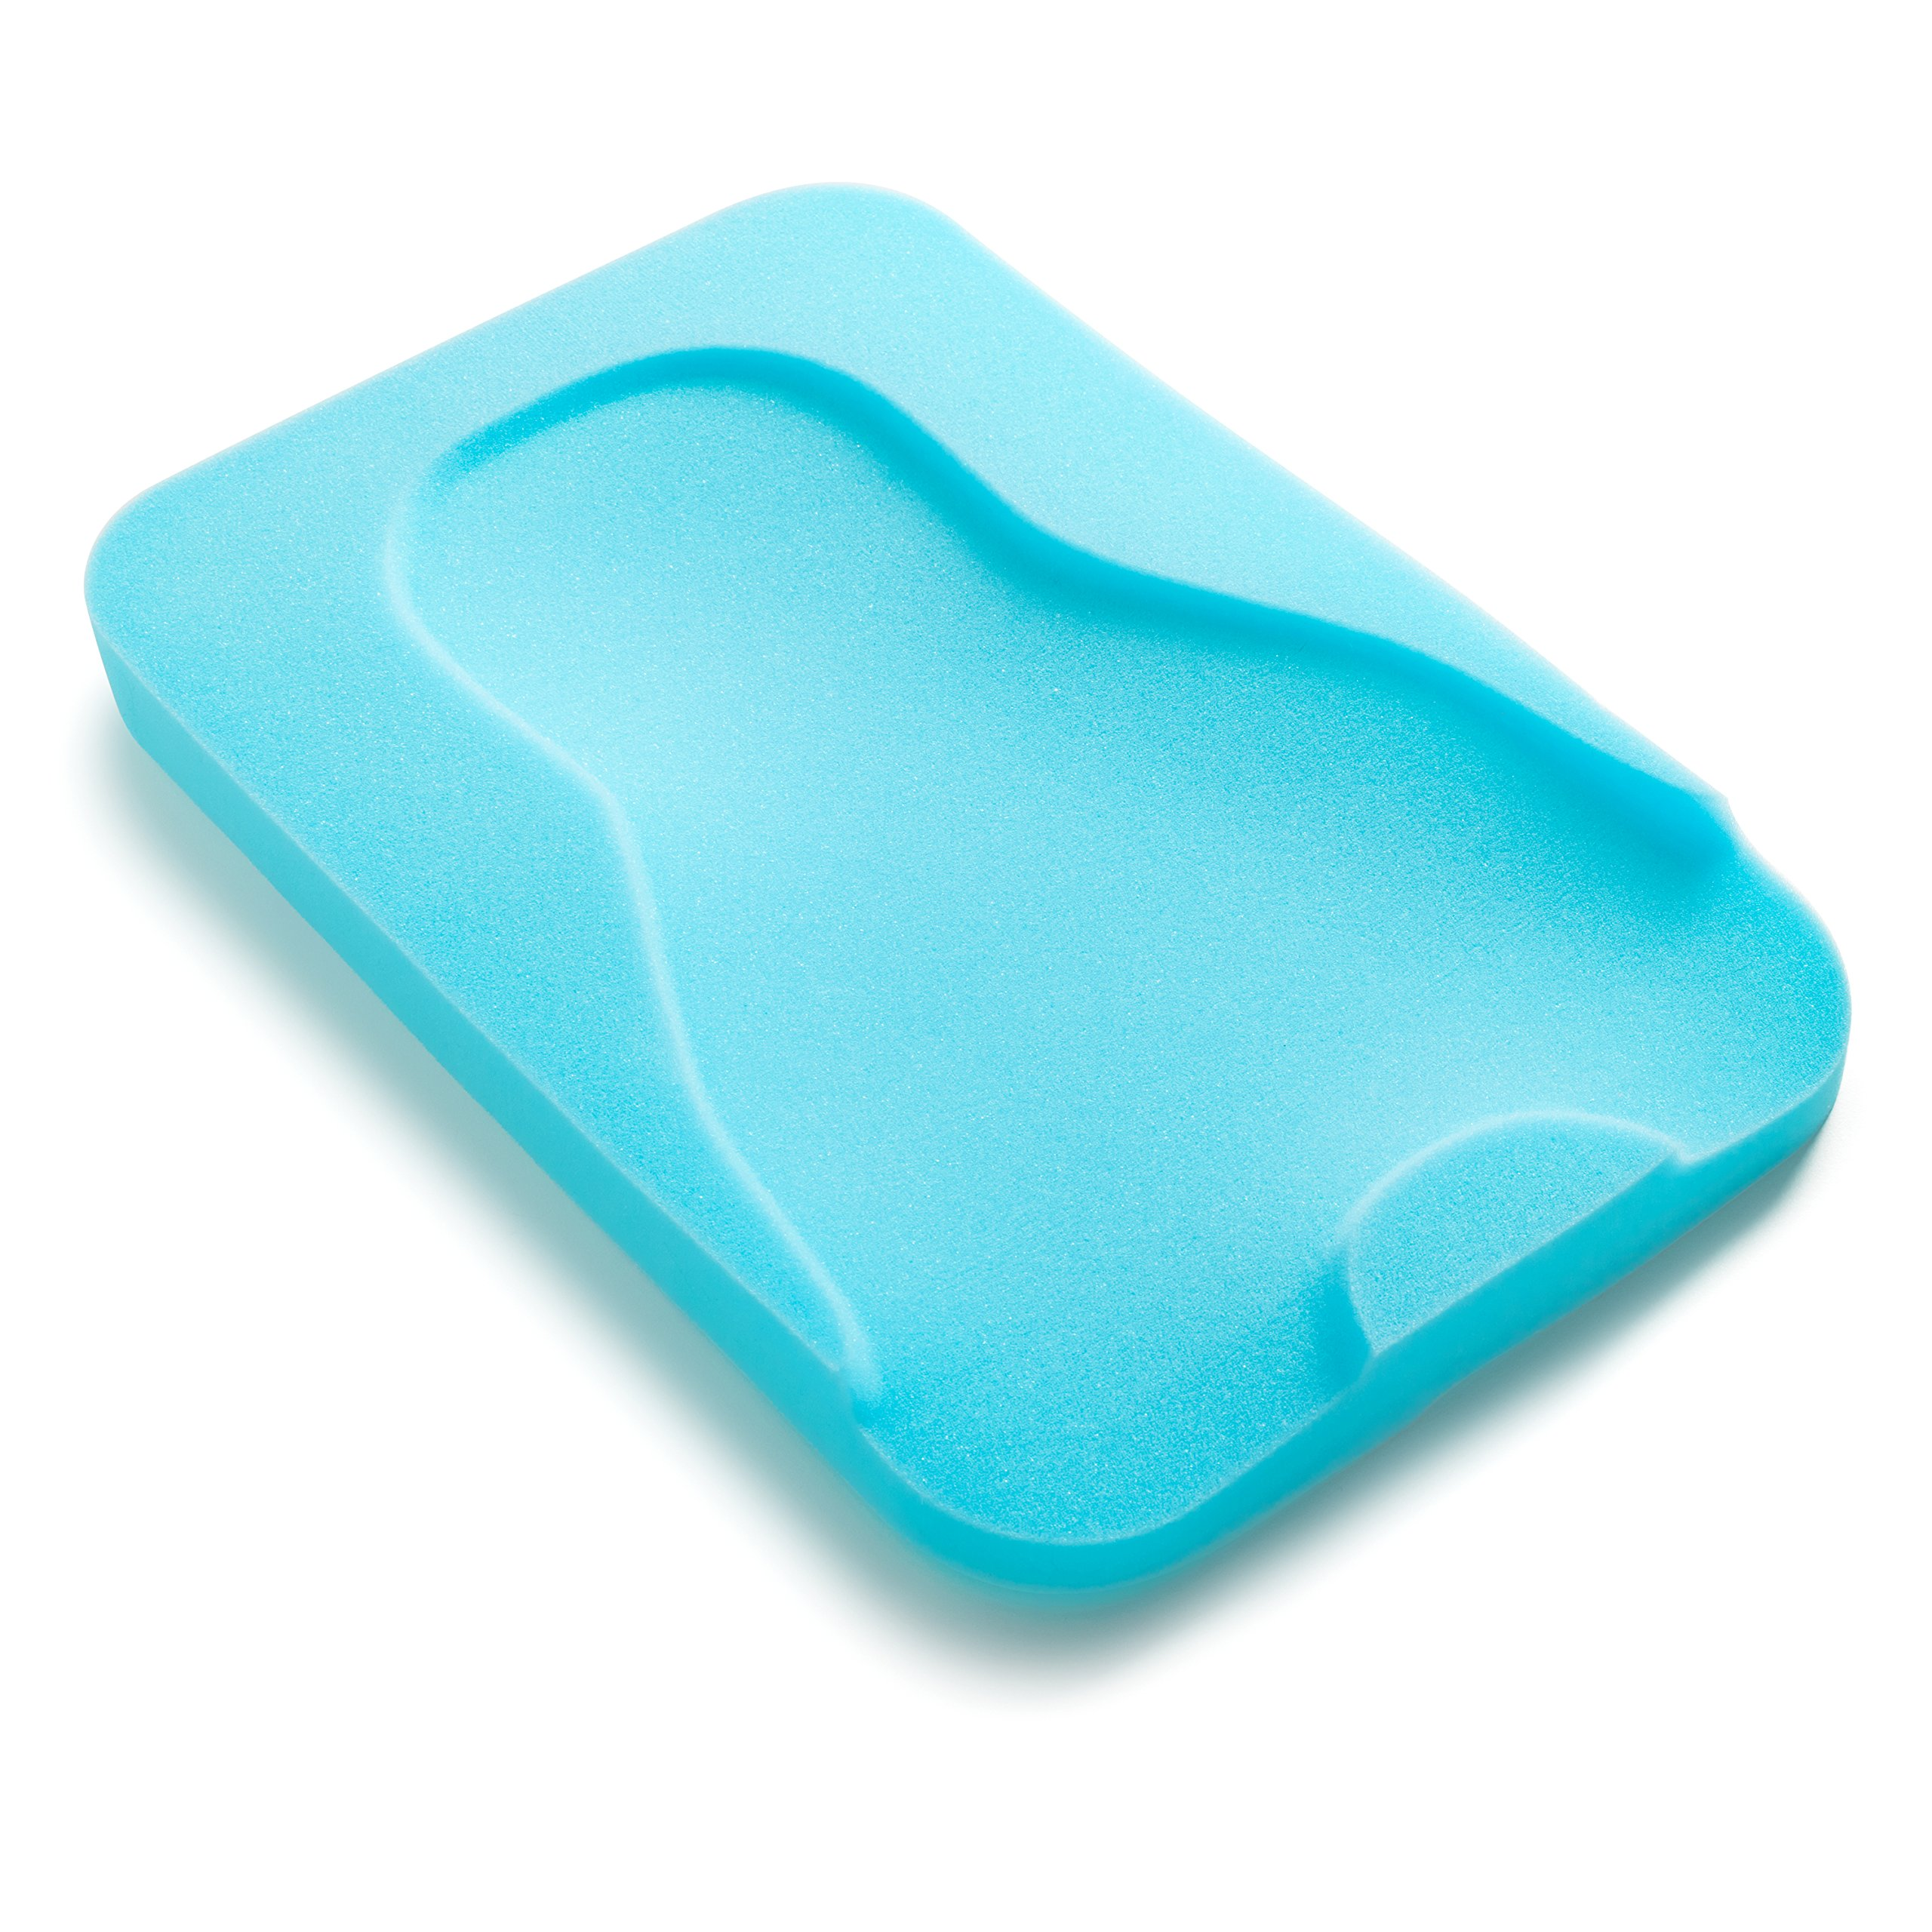 Amazon.com : Boon Naked Collapsible Baby Bathtub Blue, Blue/White ...